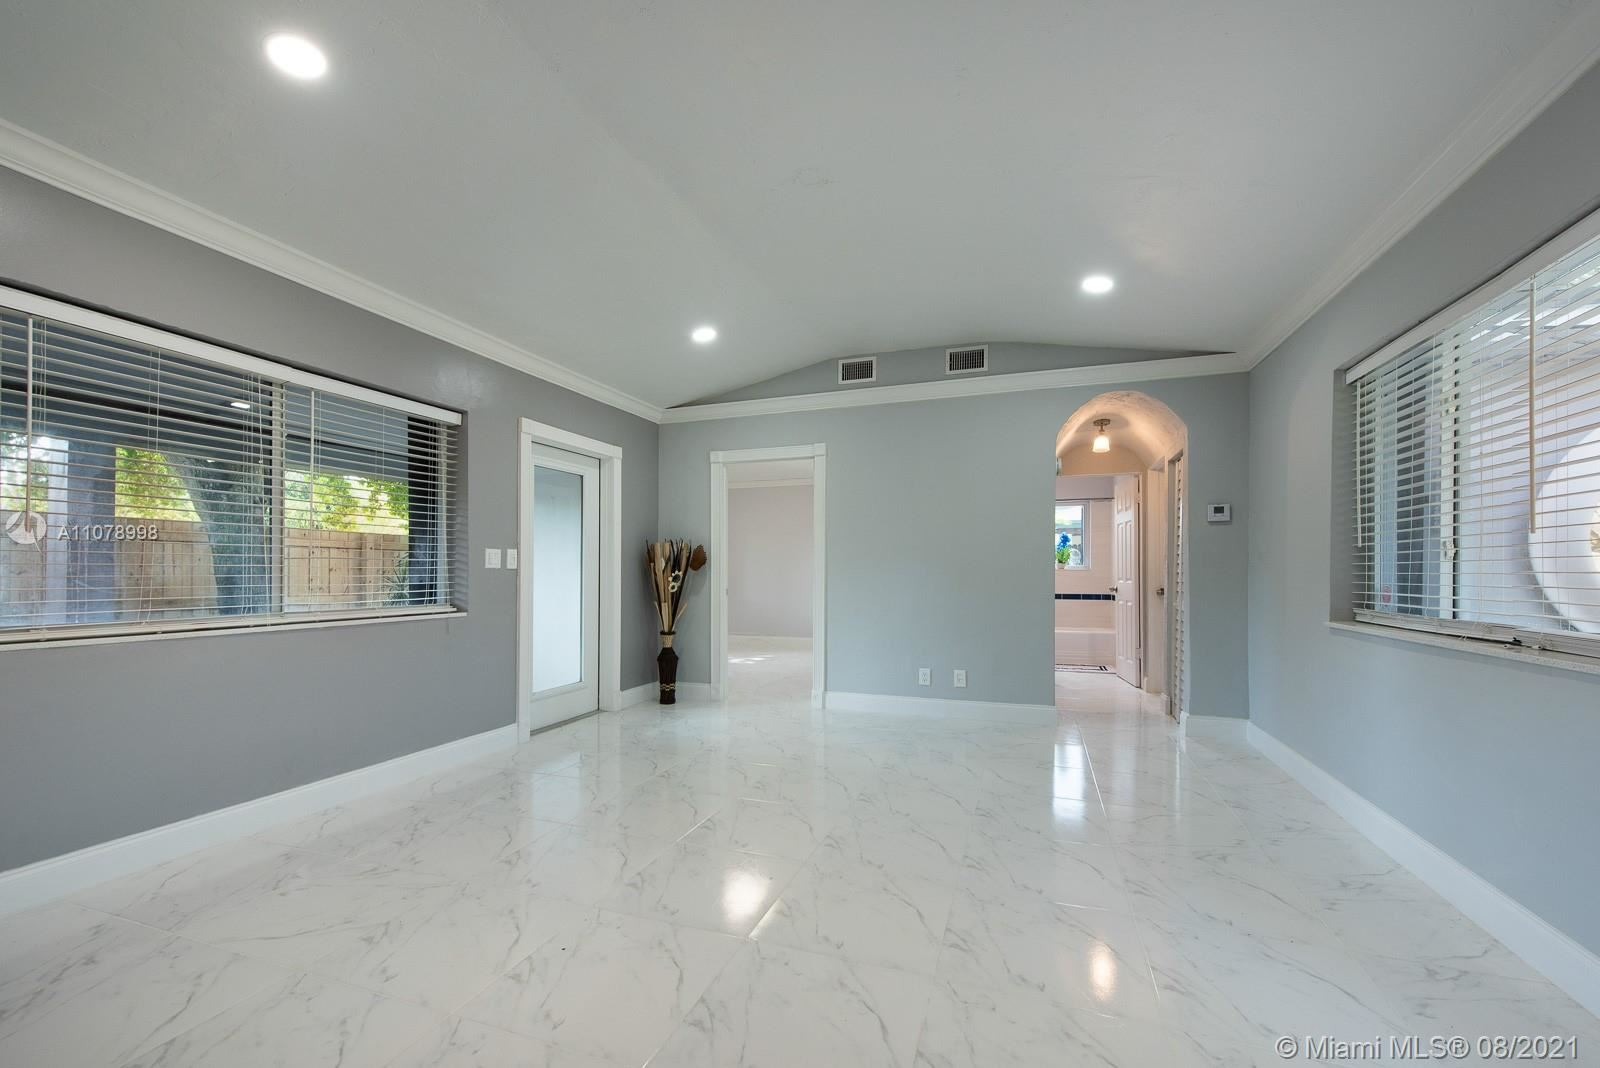 Photo of 1453 NE 15th Ave, Fort Lauderdale, FL 33304 (MLS # A11078998)